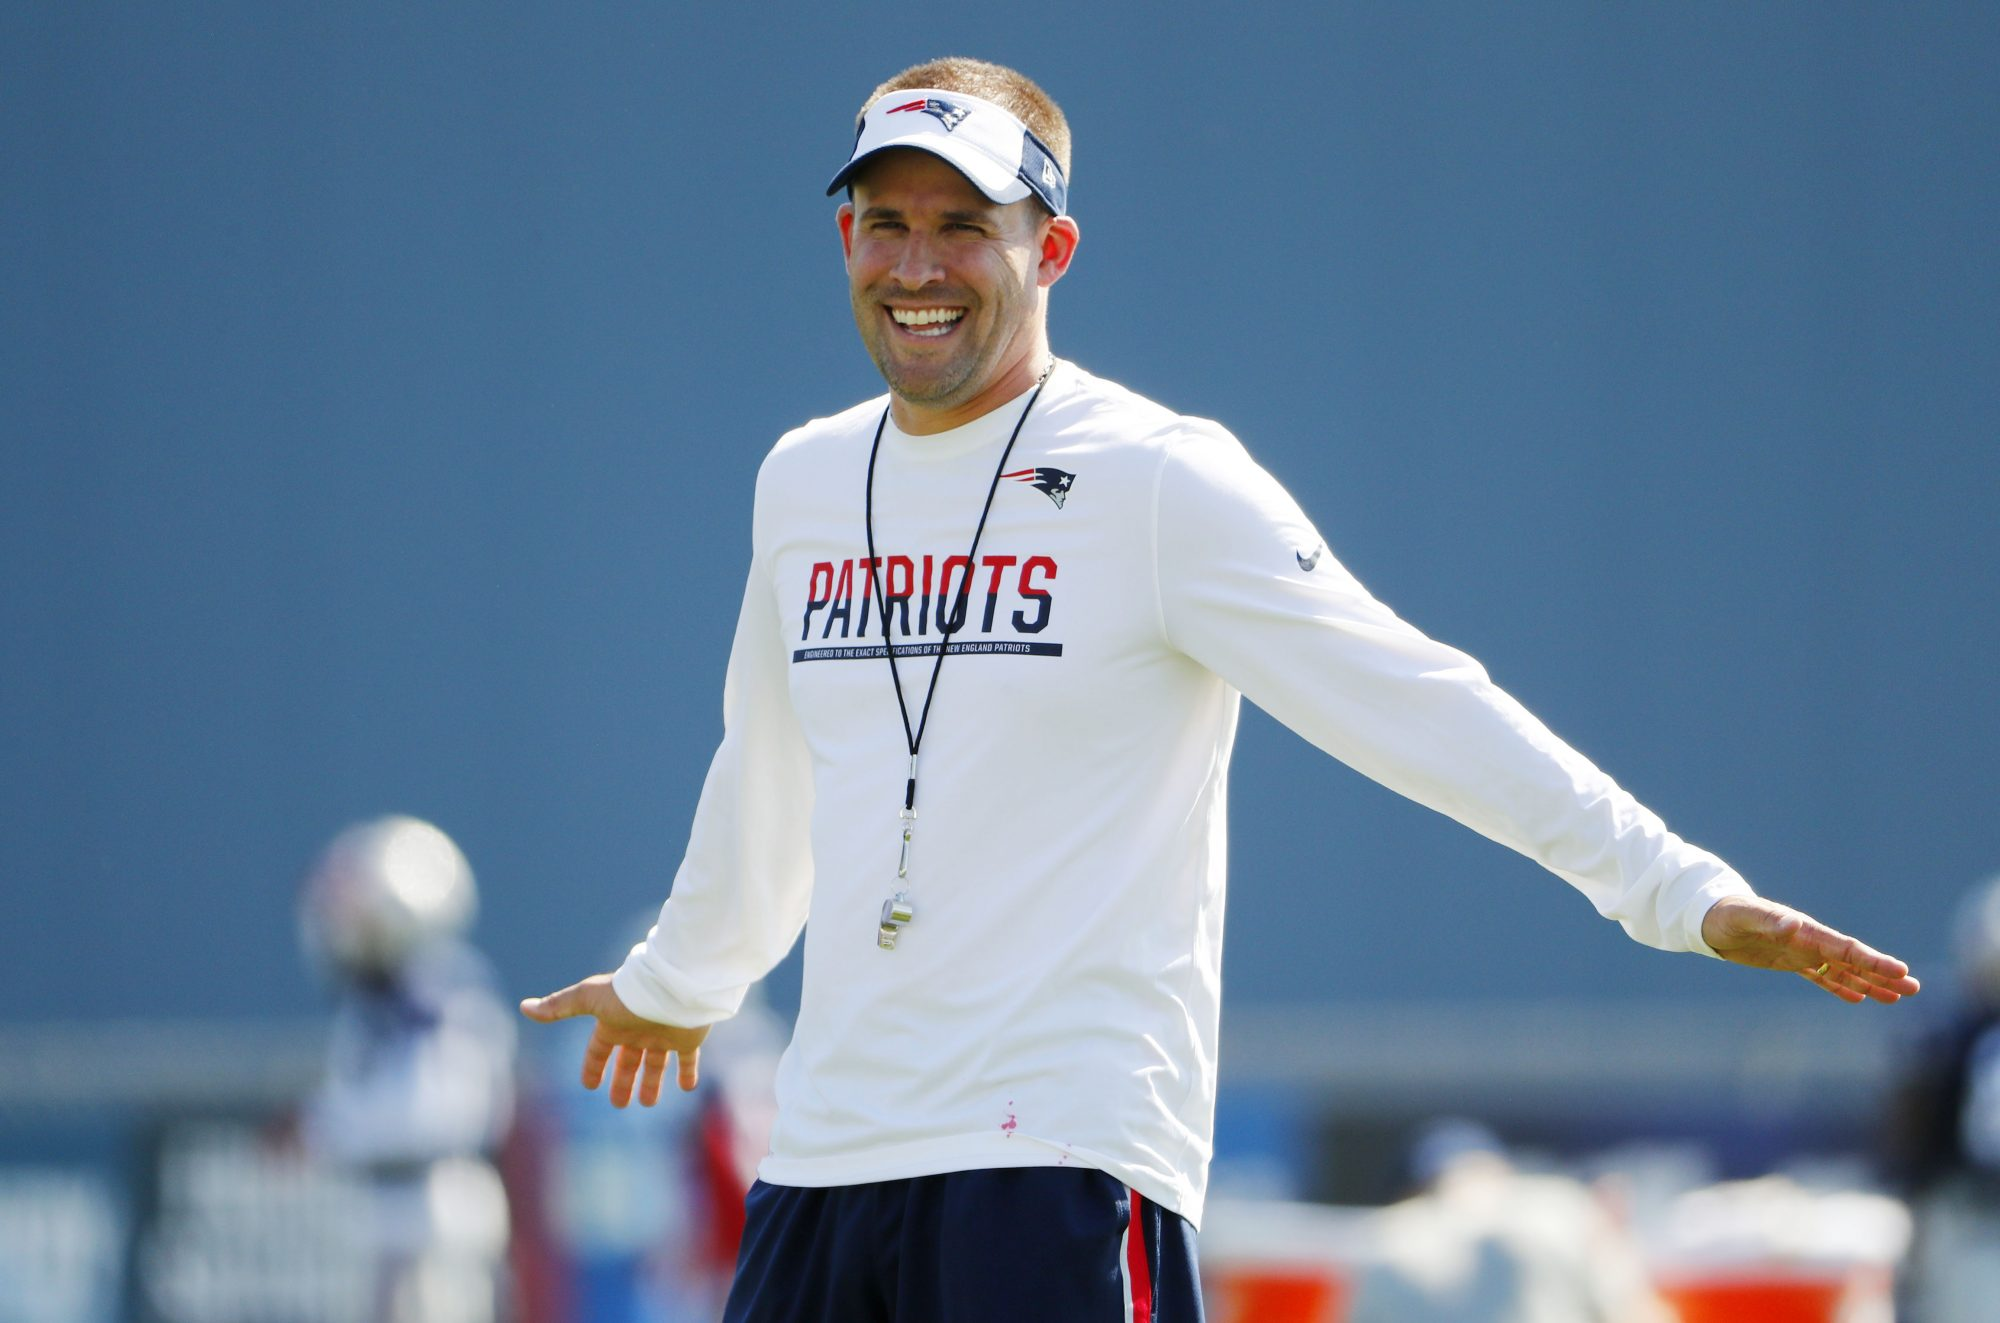 New York Jets Top 5 Head Coach Wish List: Could Josh McDaniels Pull an Eric Mangini? 1